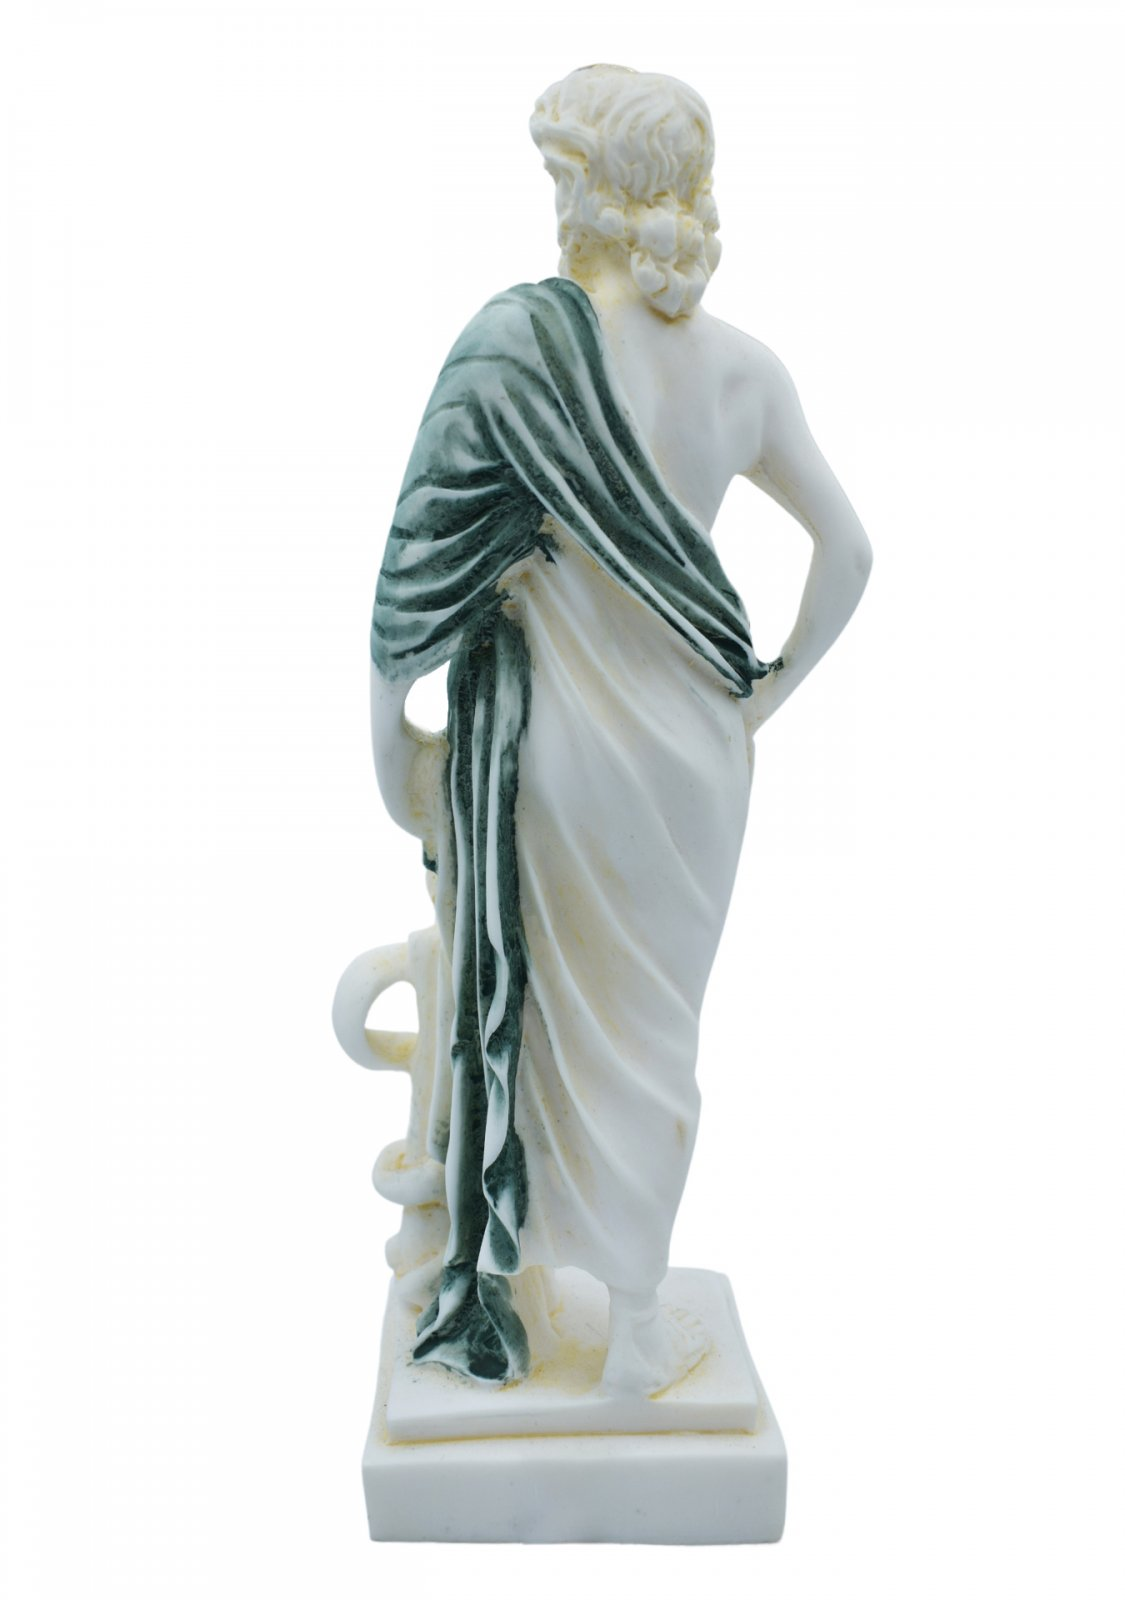 Ascelpius (Asklepios), the greek god of medicine, alabaster statue with green color and patina